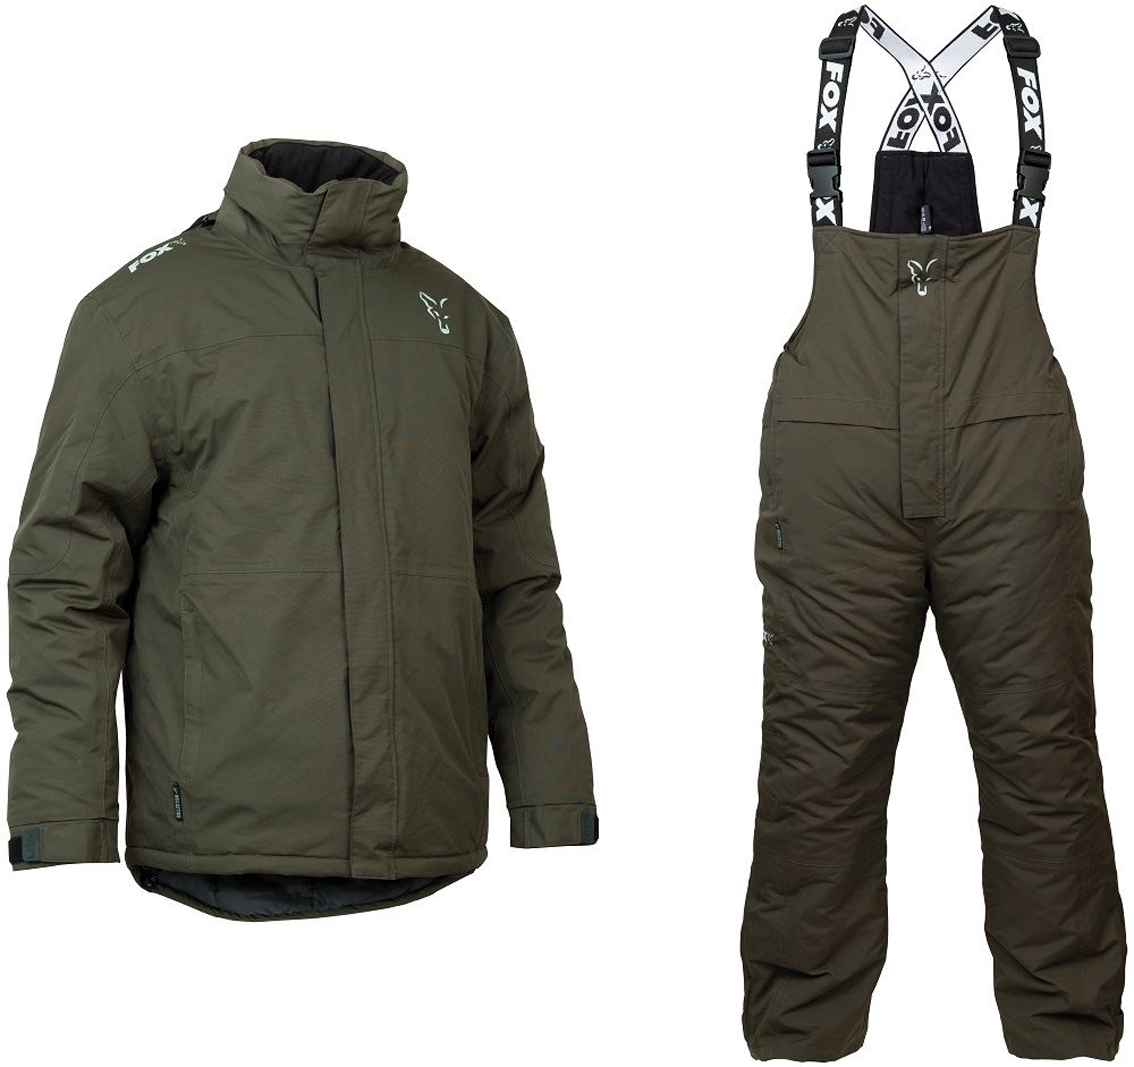 FOX Zimný Oblek Carp Winter Suit  - L